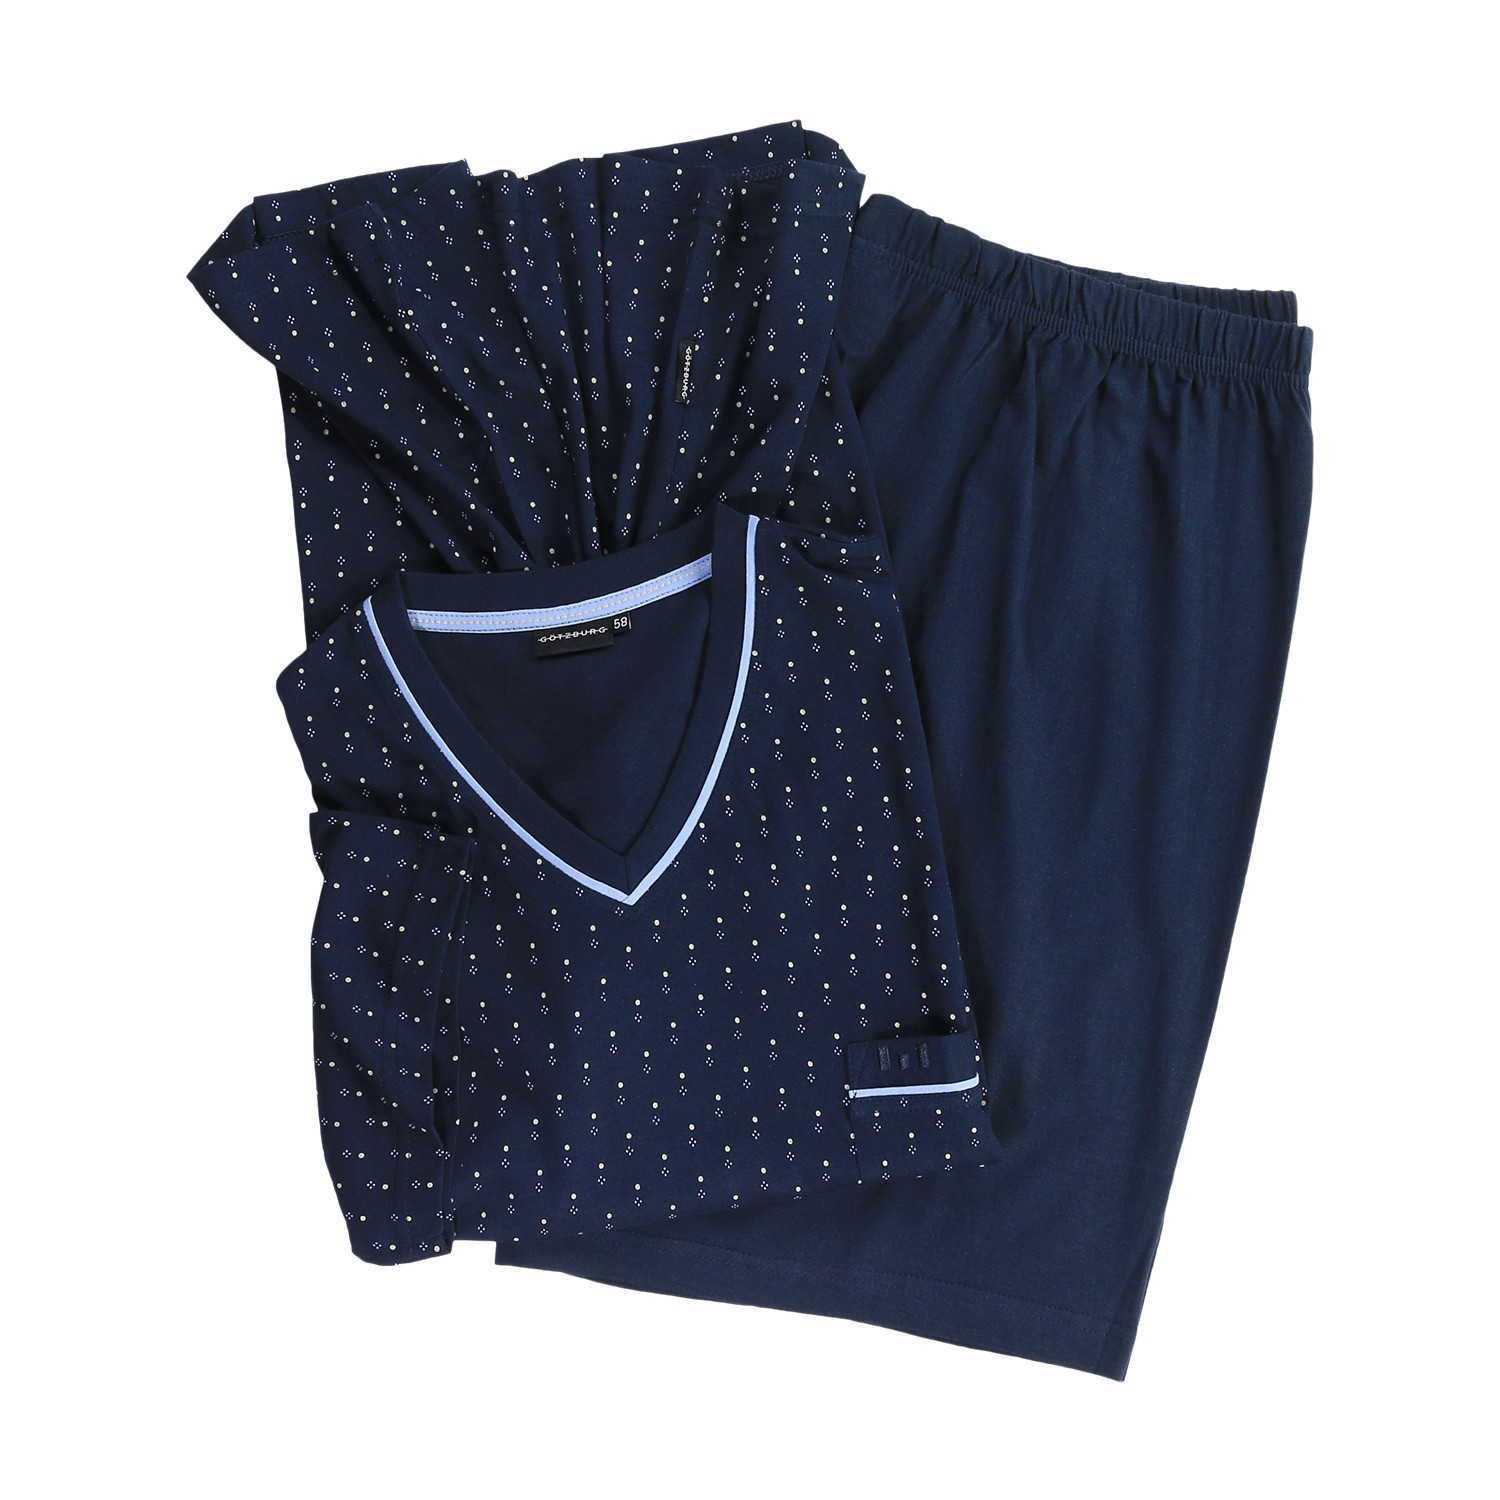 Detail Image to Short pyjamas with points in navy by Götzburg up to oversize 9XL